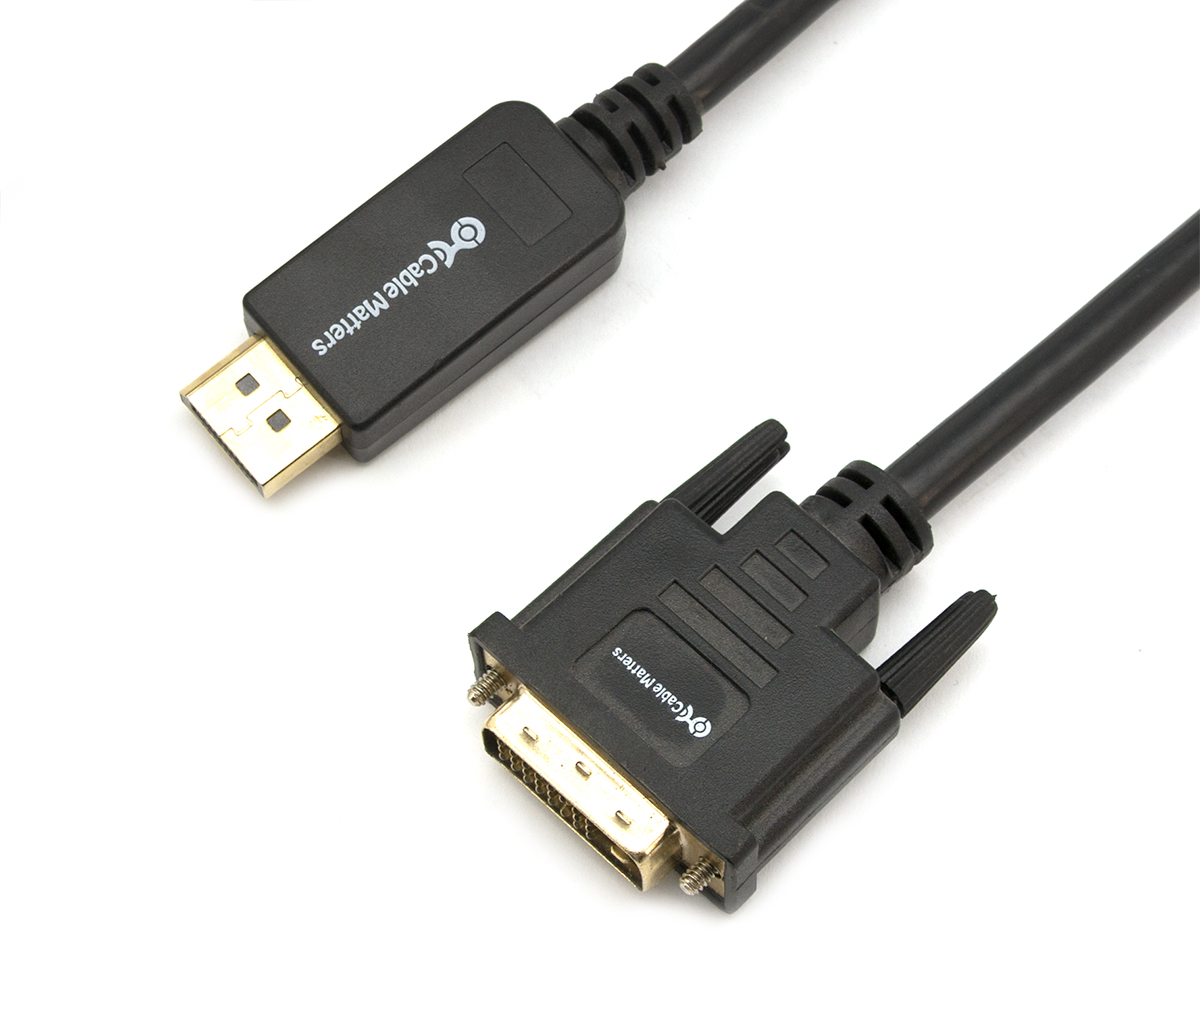 Cable Matters DisplayPort to Mini DisplayPort Adapter DP to Mini DP 6 Inches